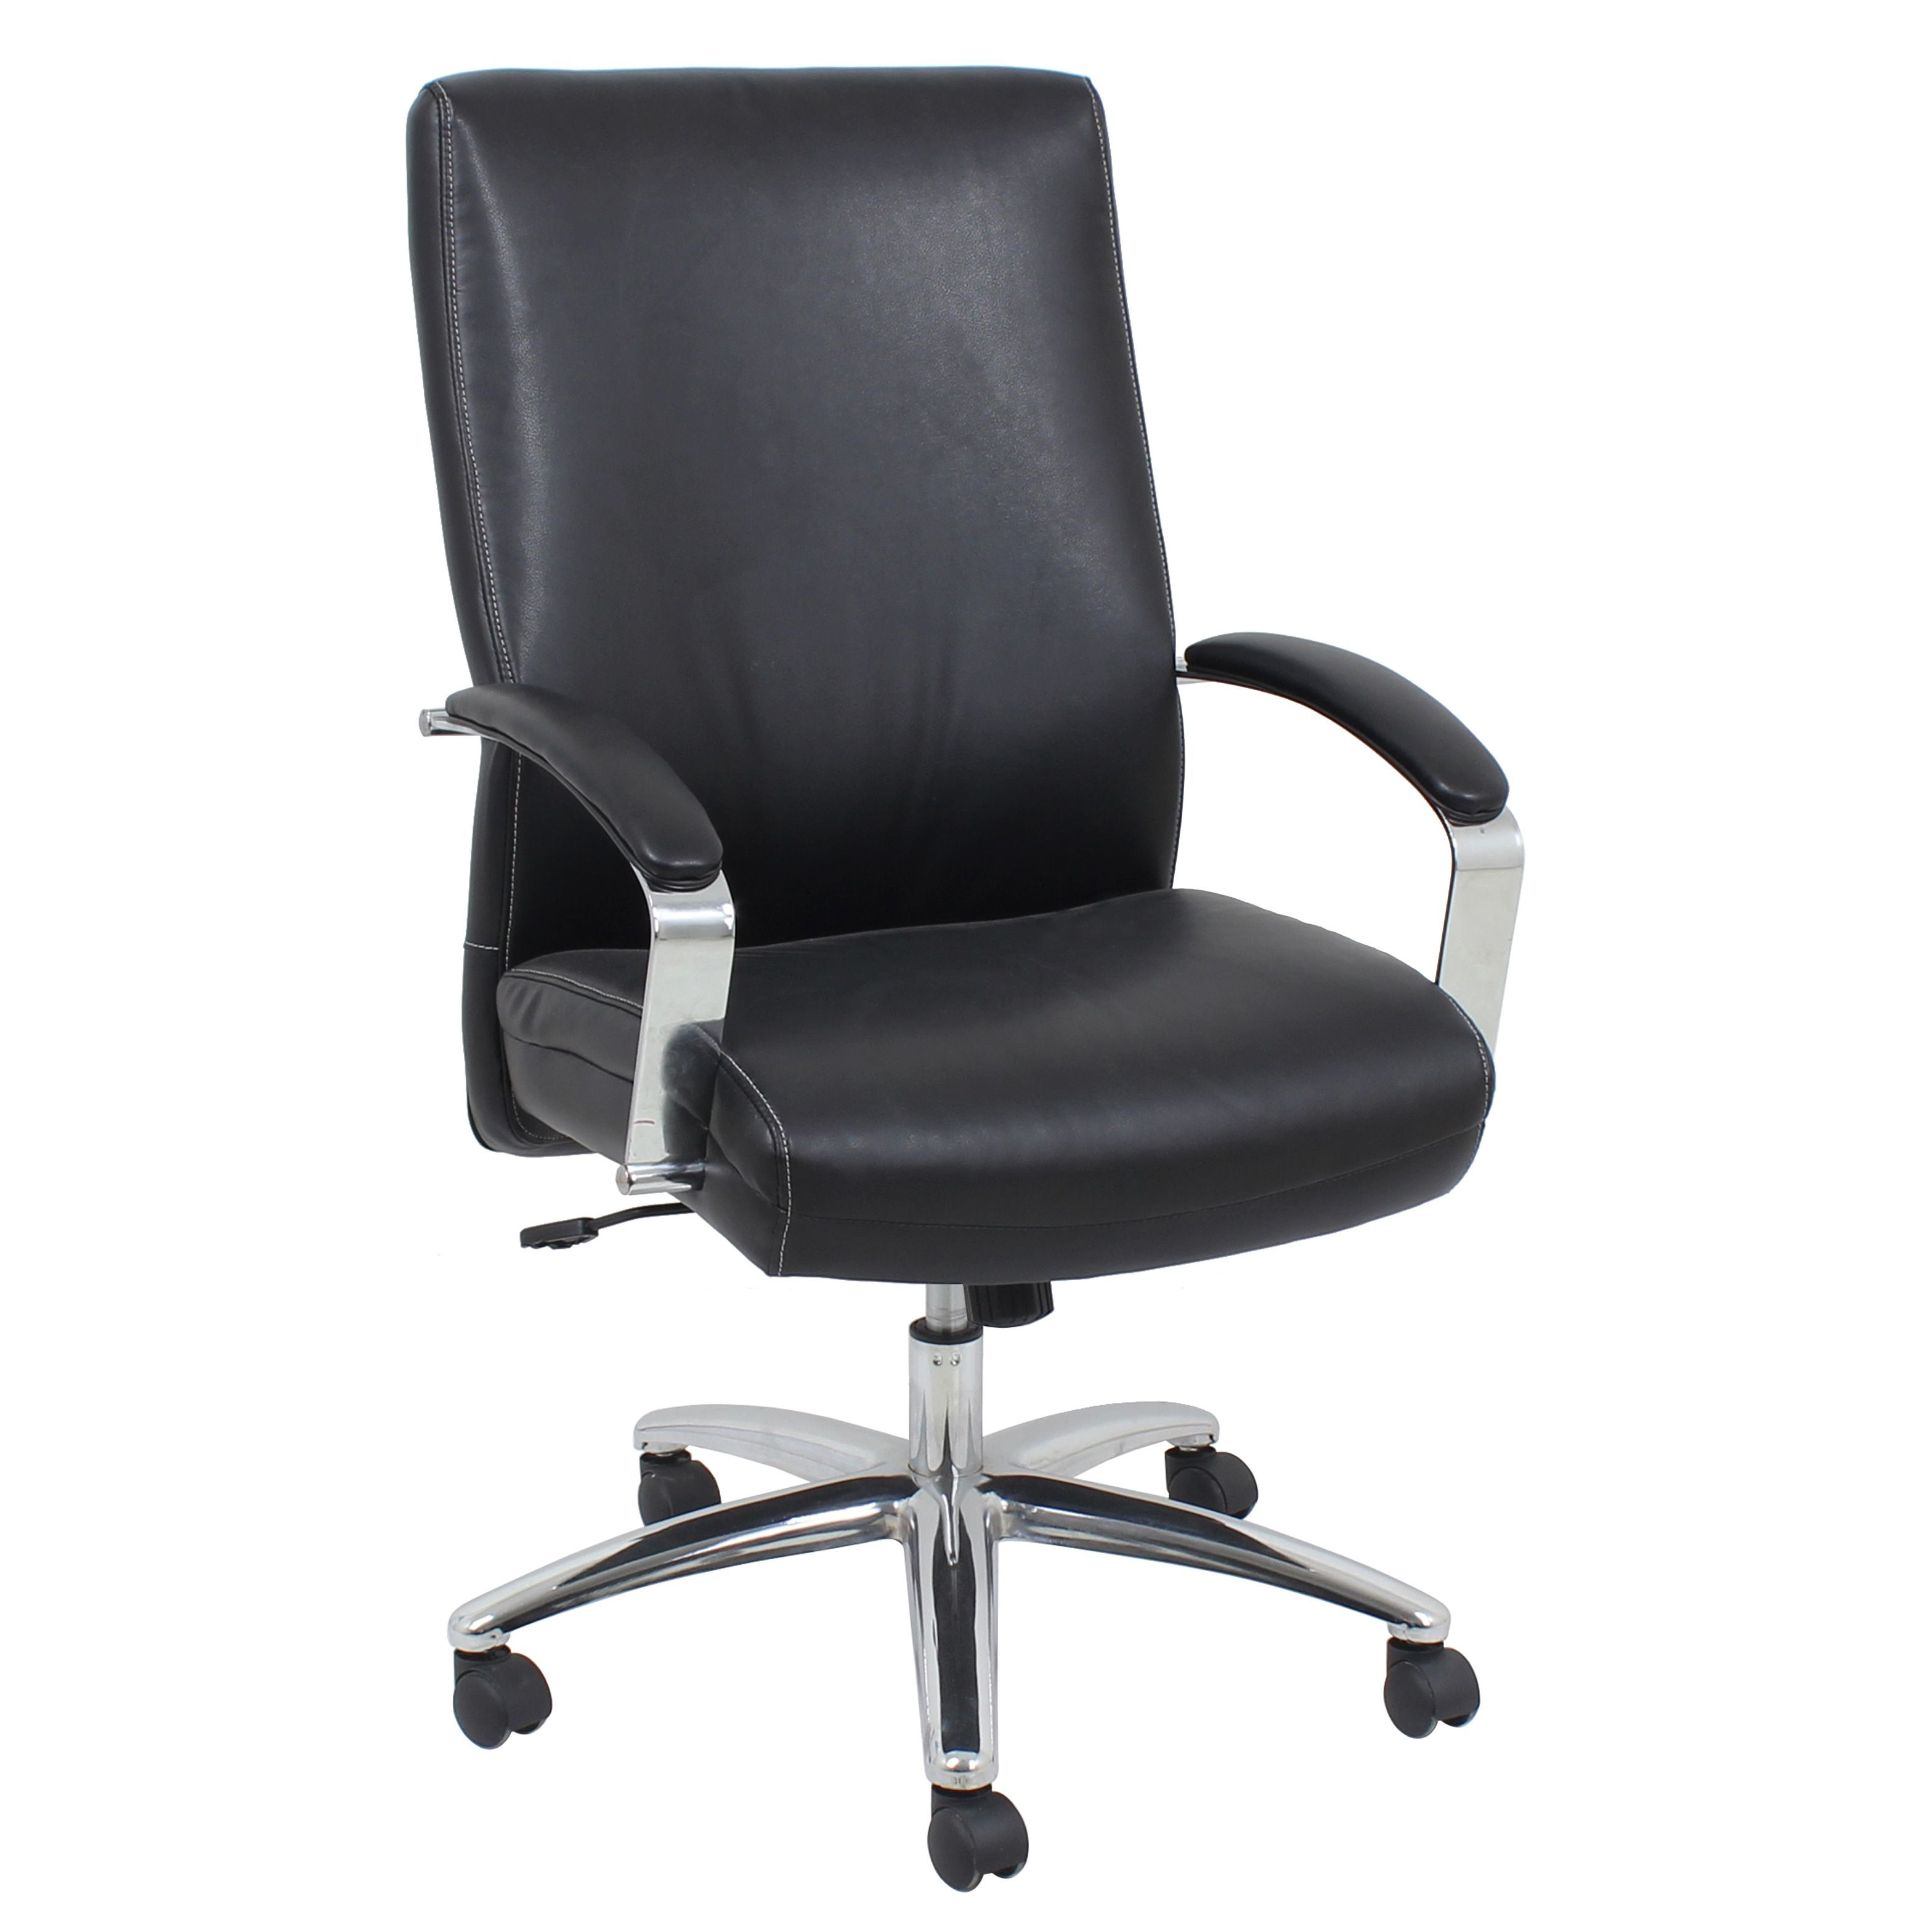 Barcalounger and Chrome Manager Chair Products